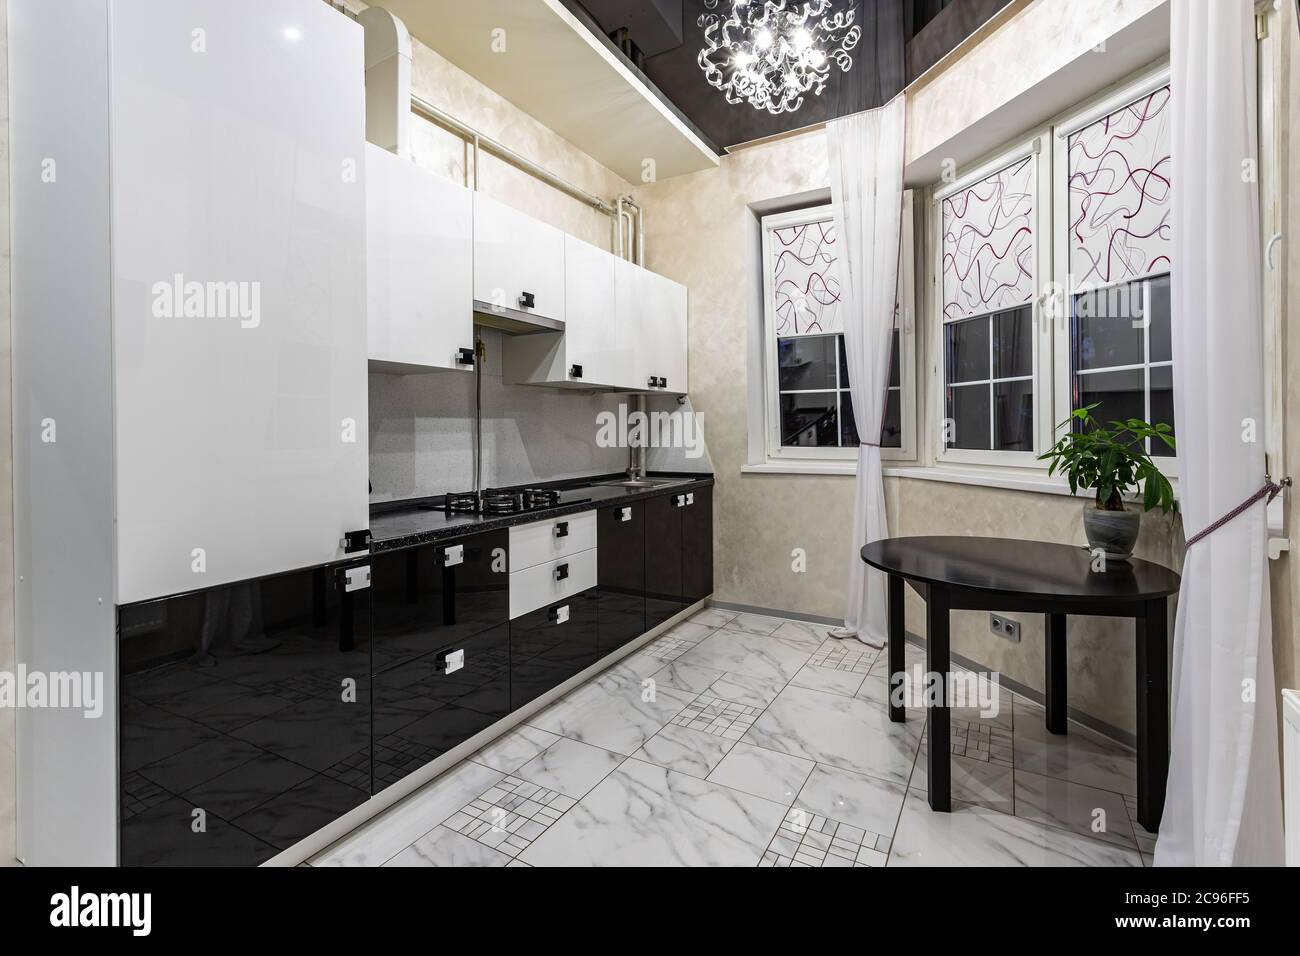 Cozy Modern Kitchen In Small Apartments White Furniture With Black Top And A Wooden Dining Table Interior Design Stock Photo Alamy